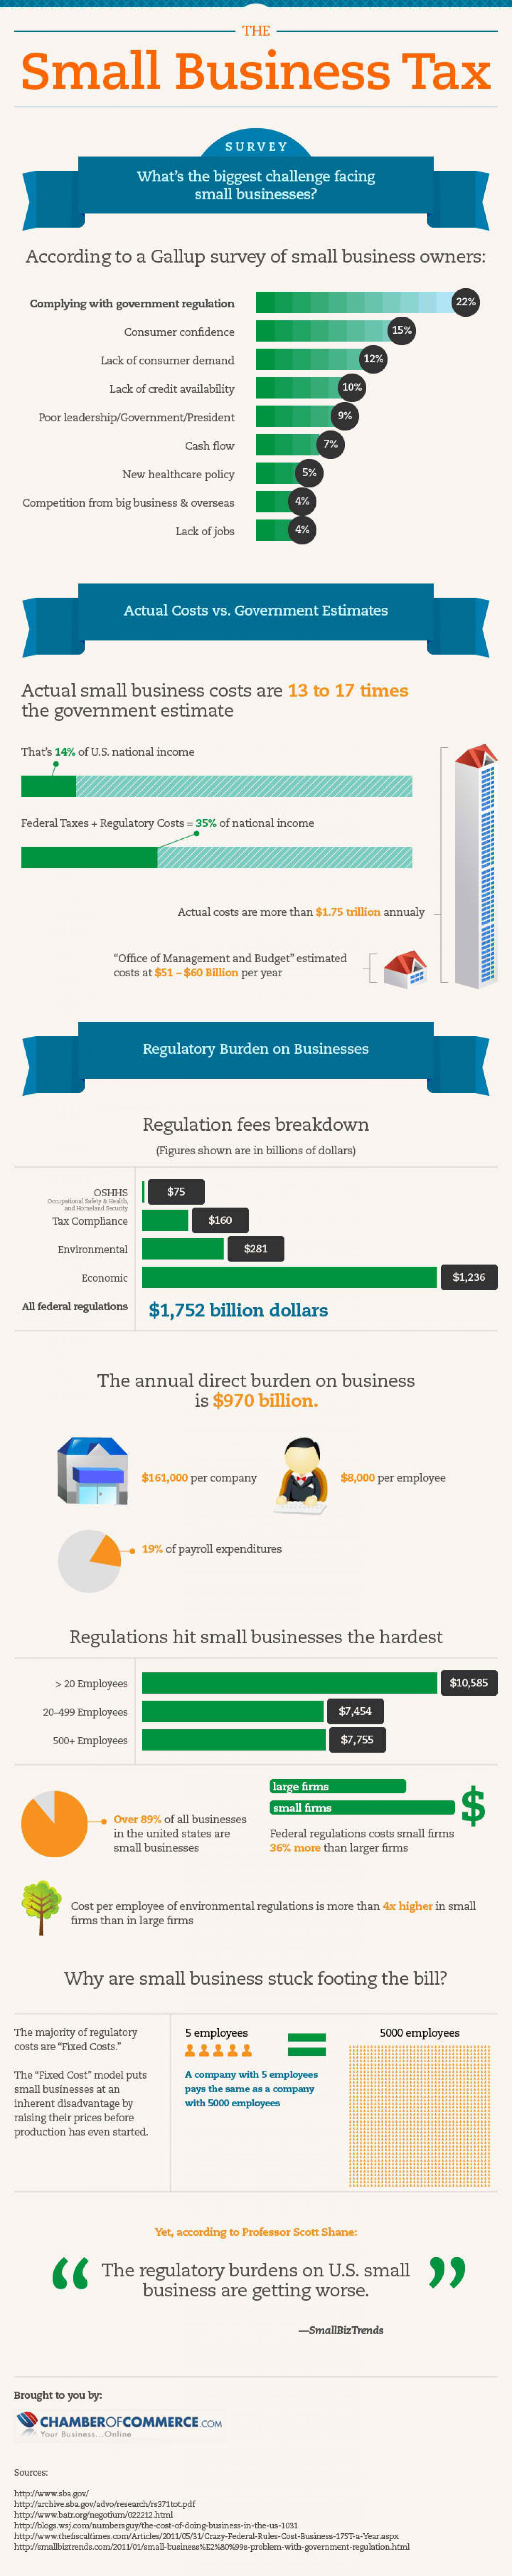 The Small Business Tax Infographic